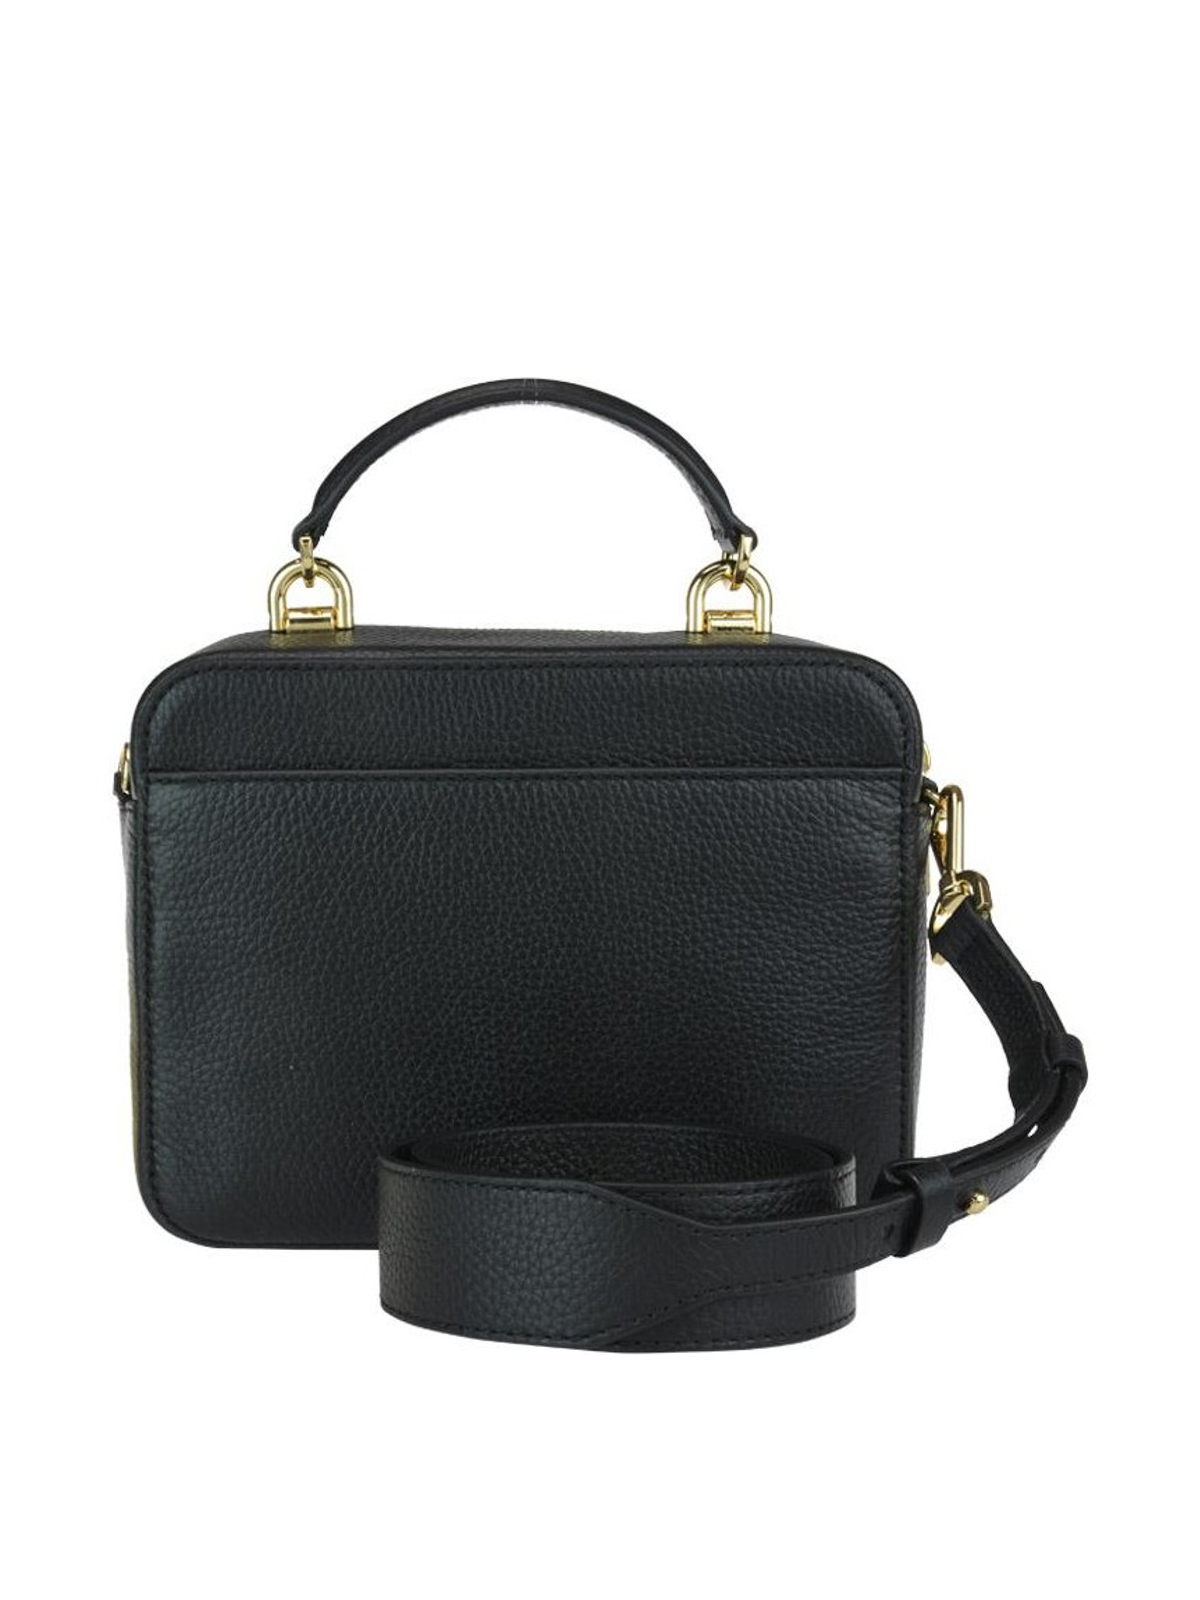 14ee5f04416a iKRIX MICHAEL KORS  cross body bags - Black grained leather briefcase style  bag